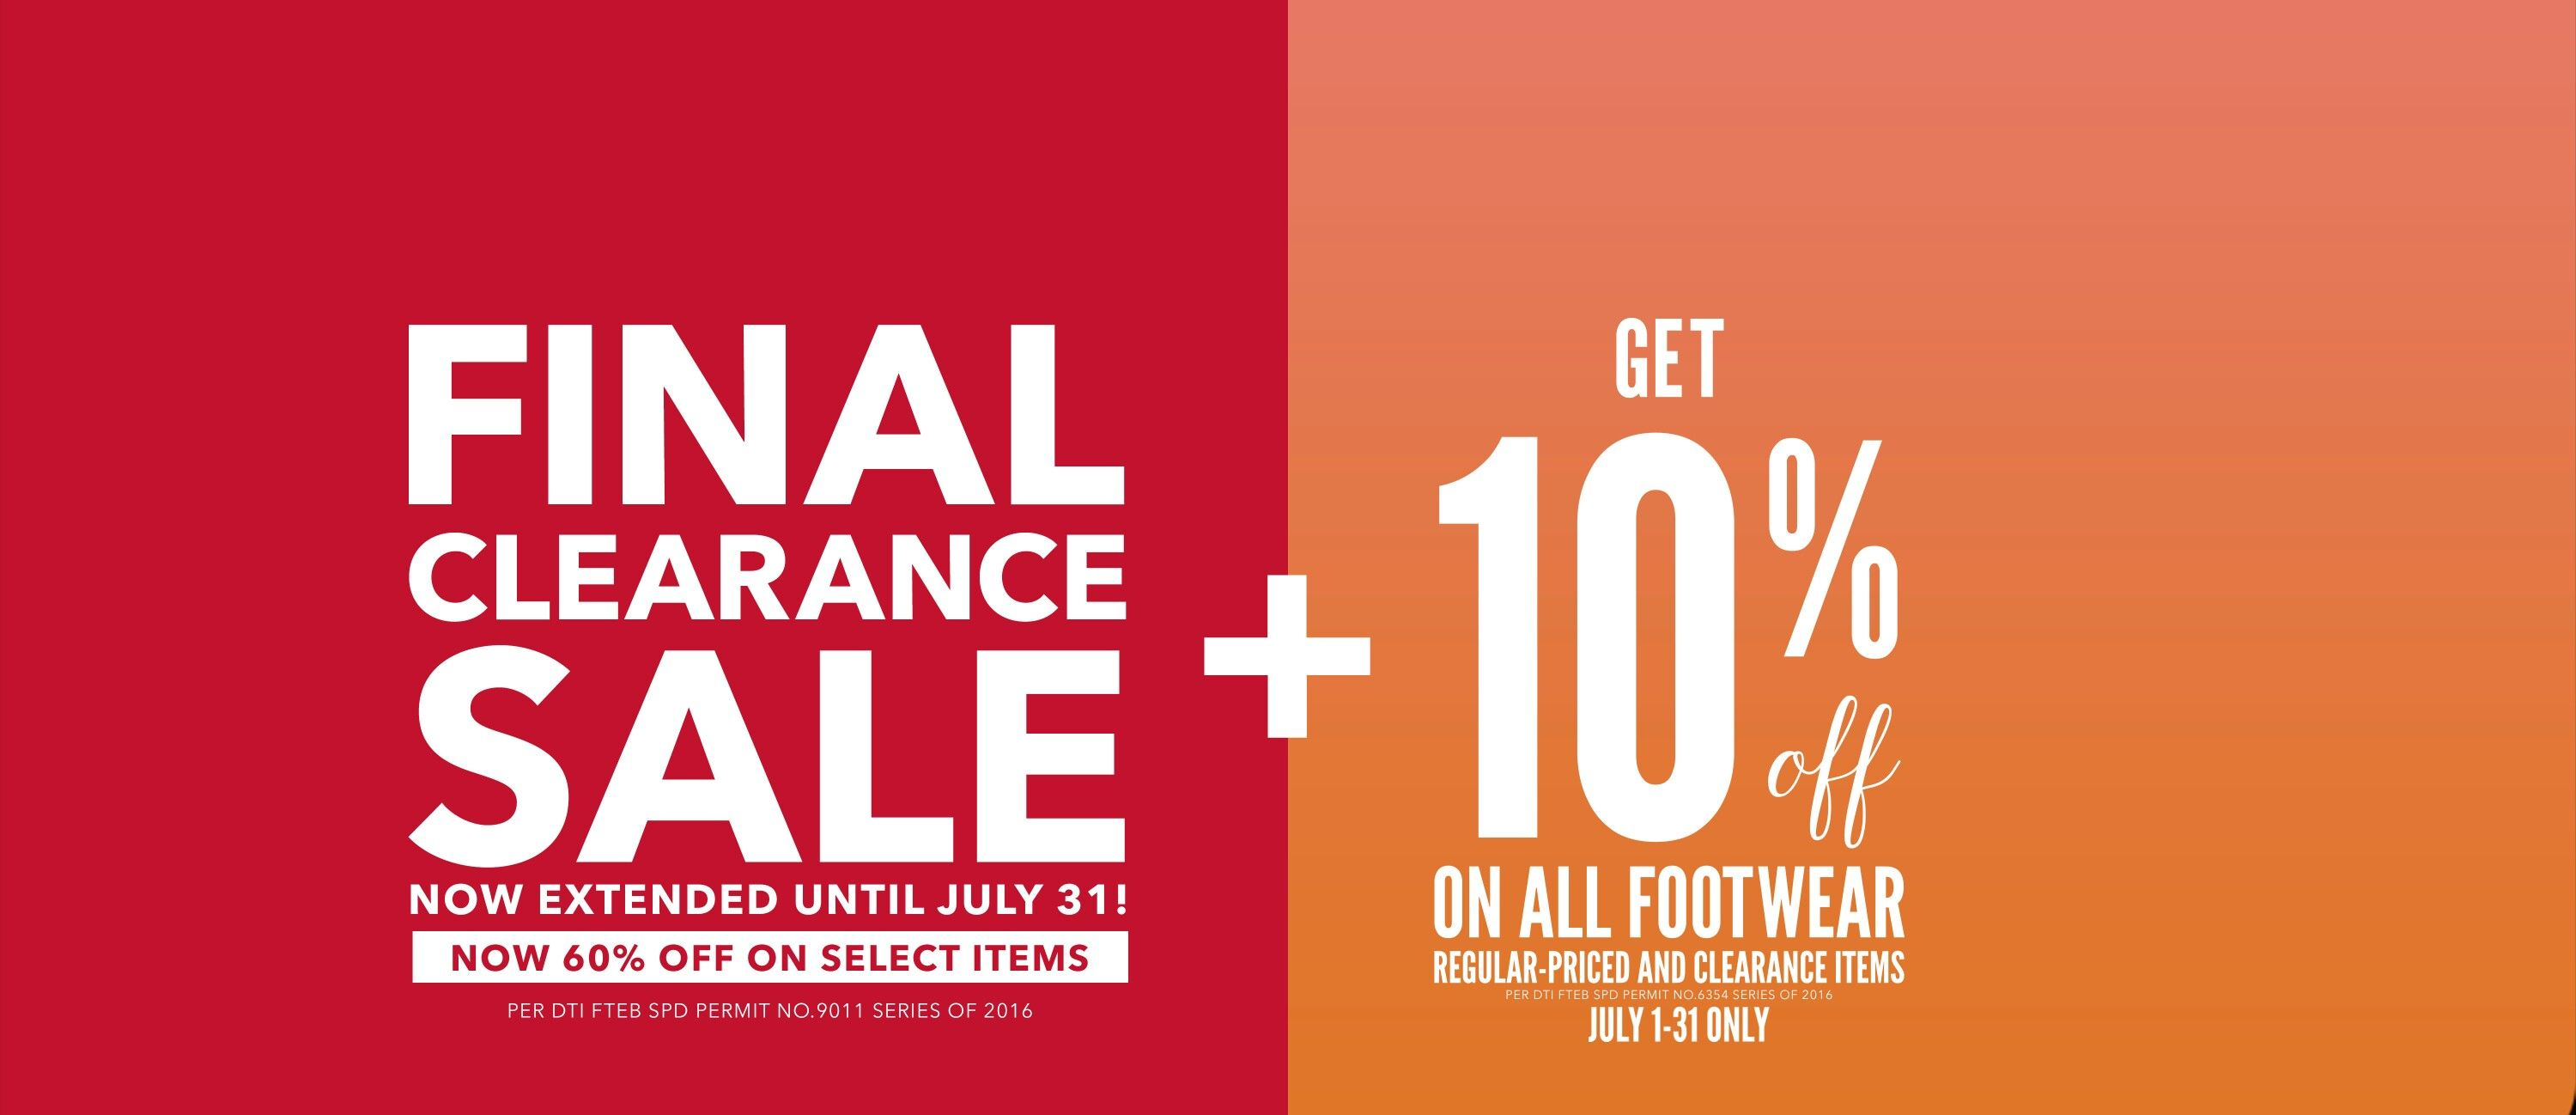 SALE Extended up to JULY 31 😀😀😀👞👟👡👠👢👣